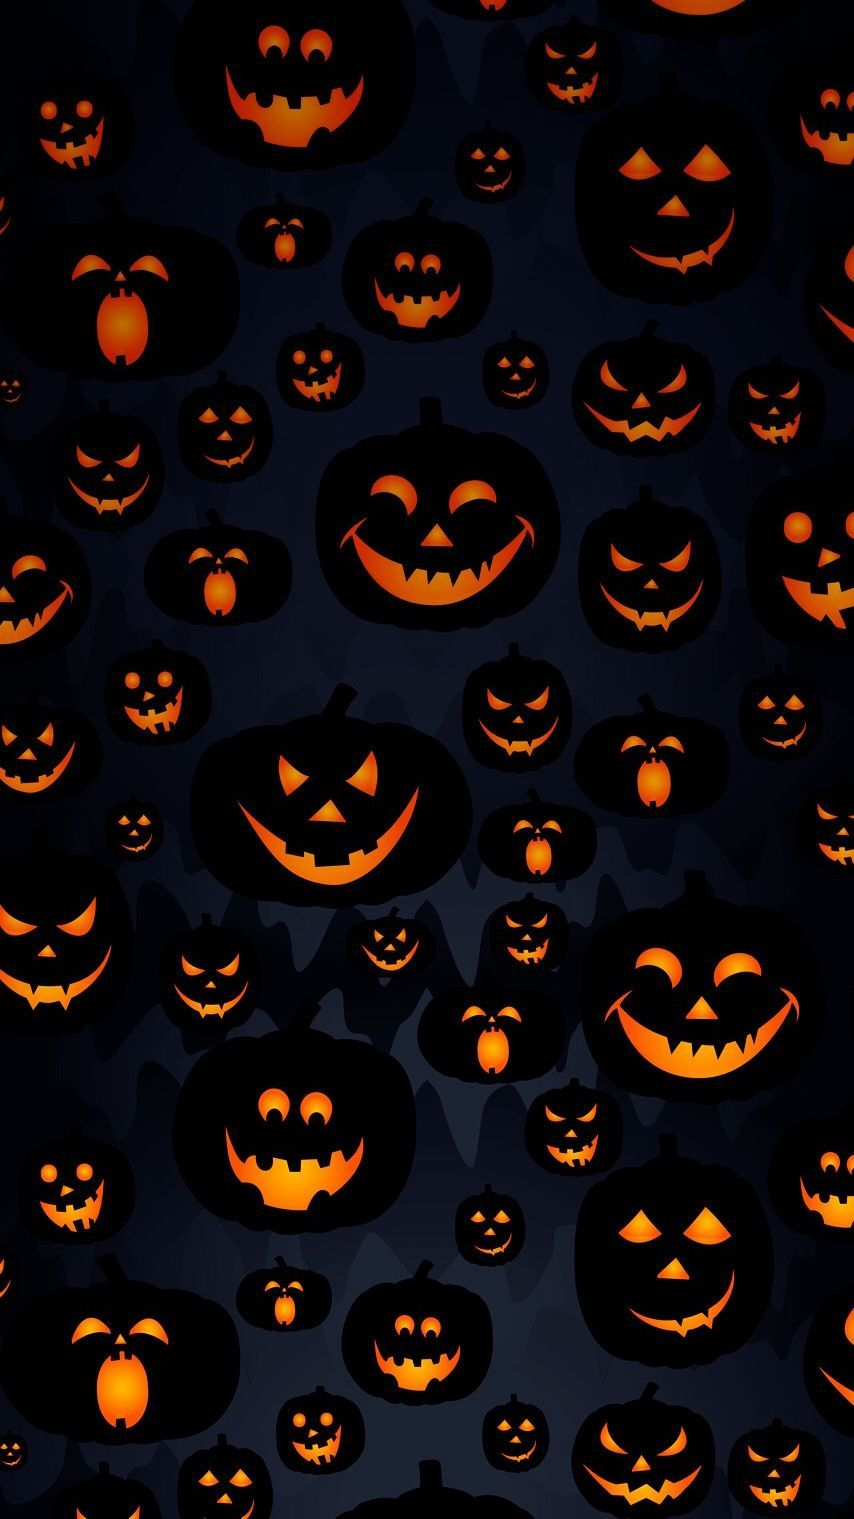 Halloween Pumpkin Iphone Wallpapers Top Free Halloween Pumpkin